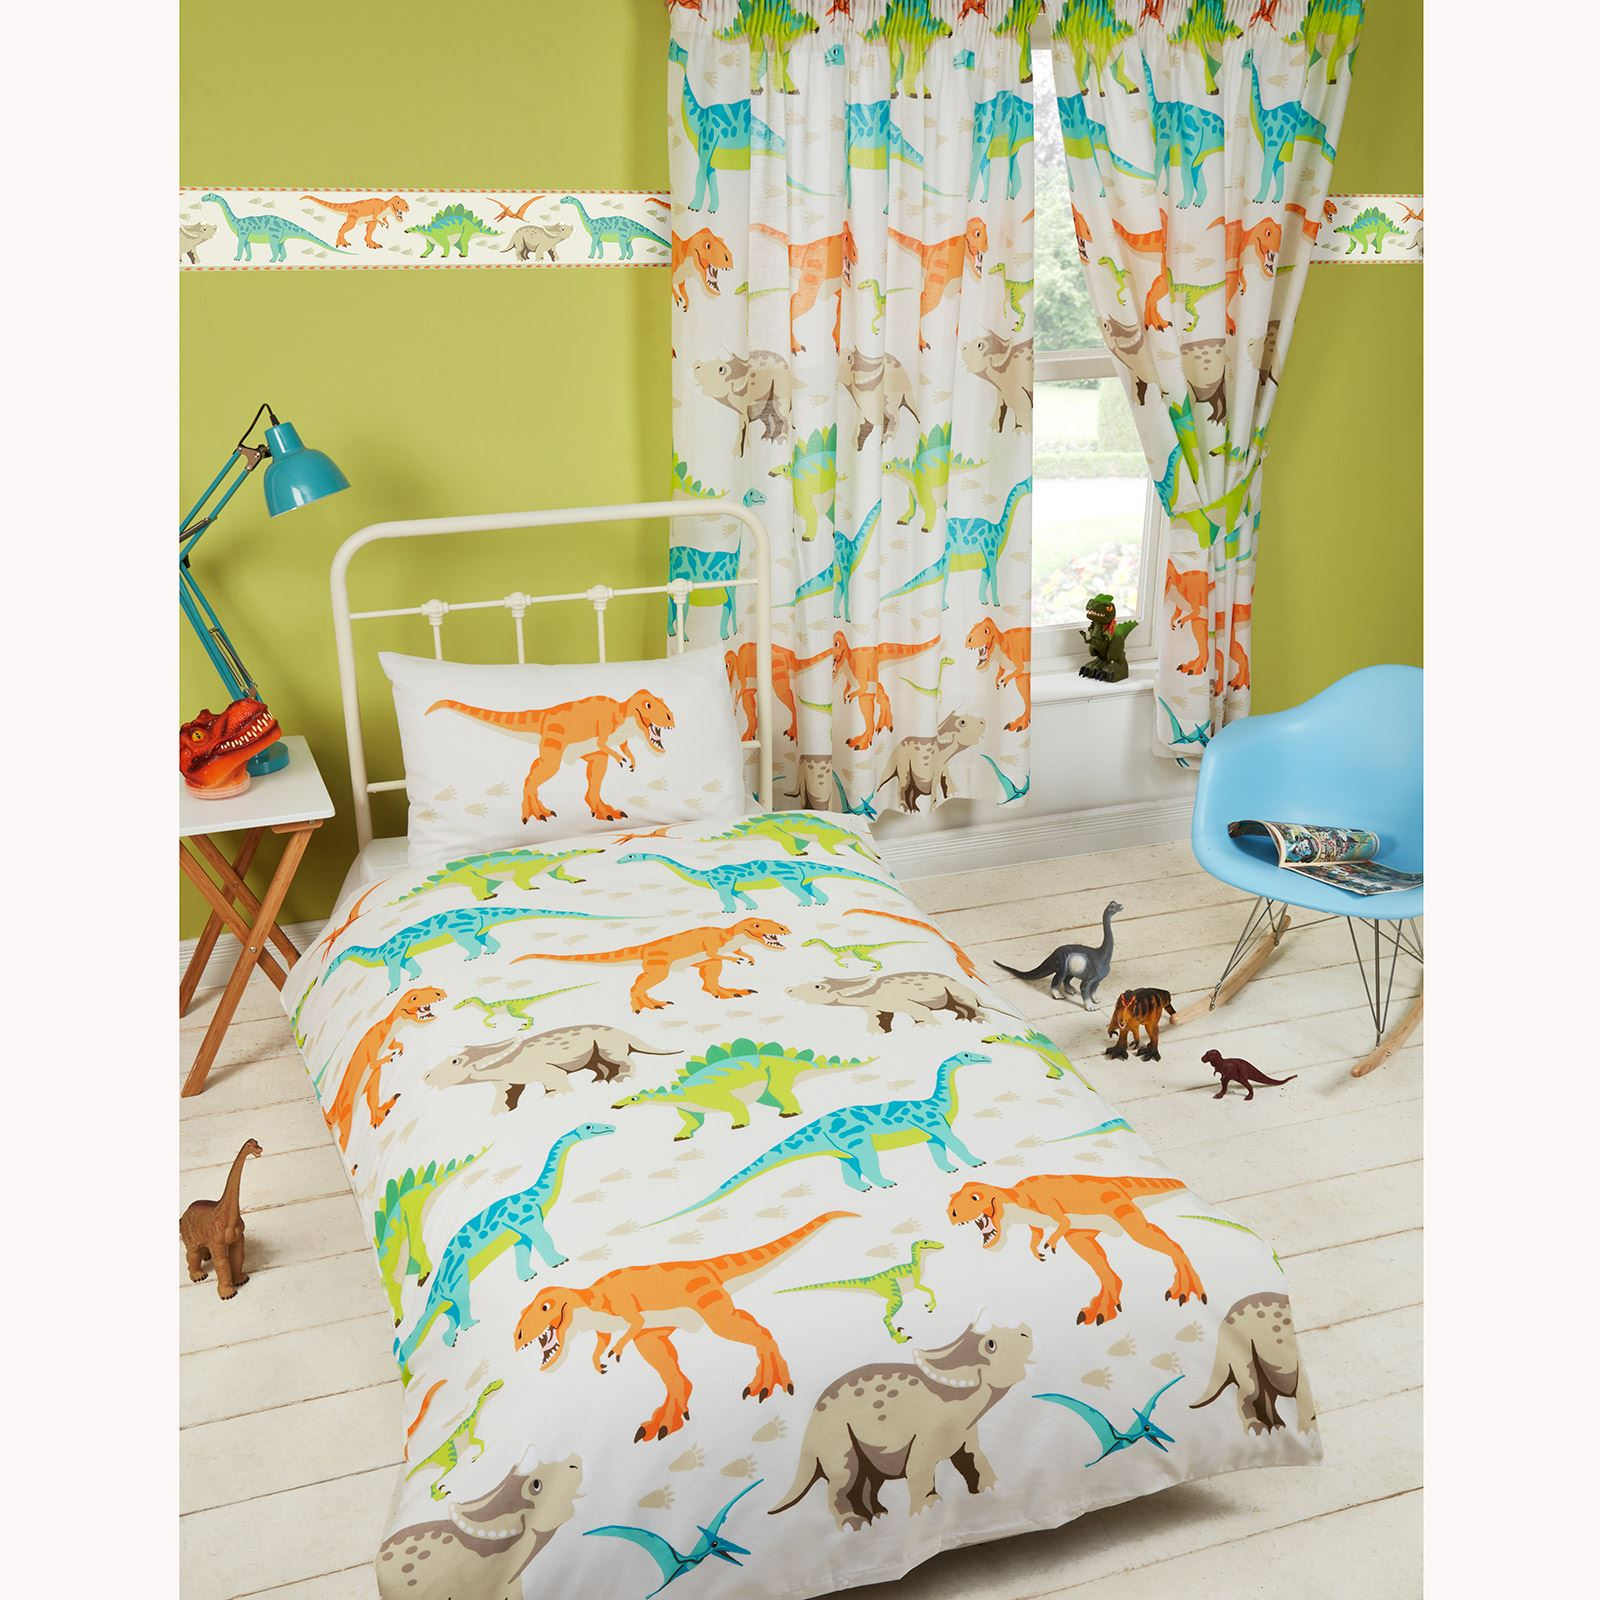 DINOSAUR WORLD KIDS MATCHING BEDDING SETS CURTAINS WALLPAPER BORDER